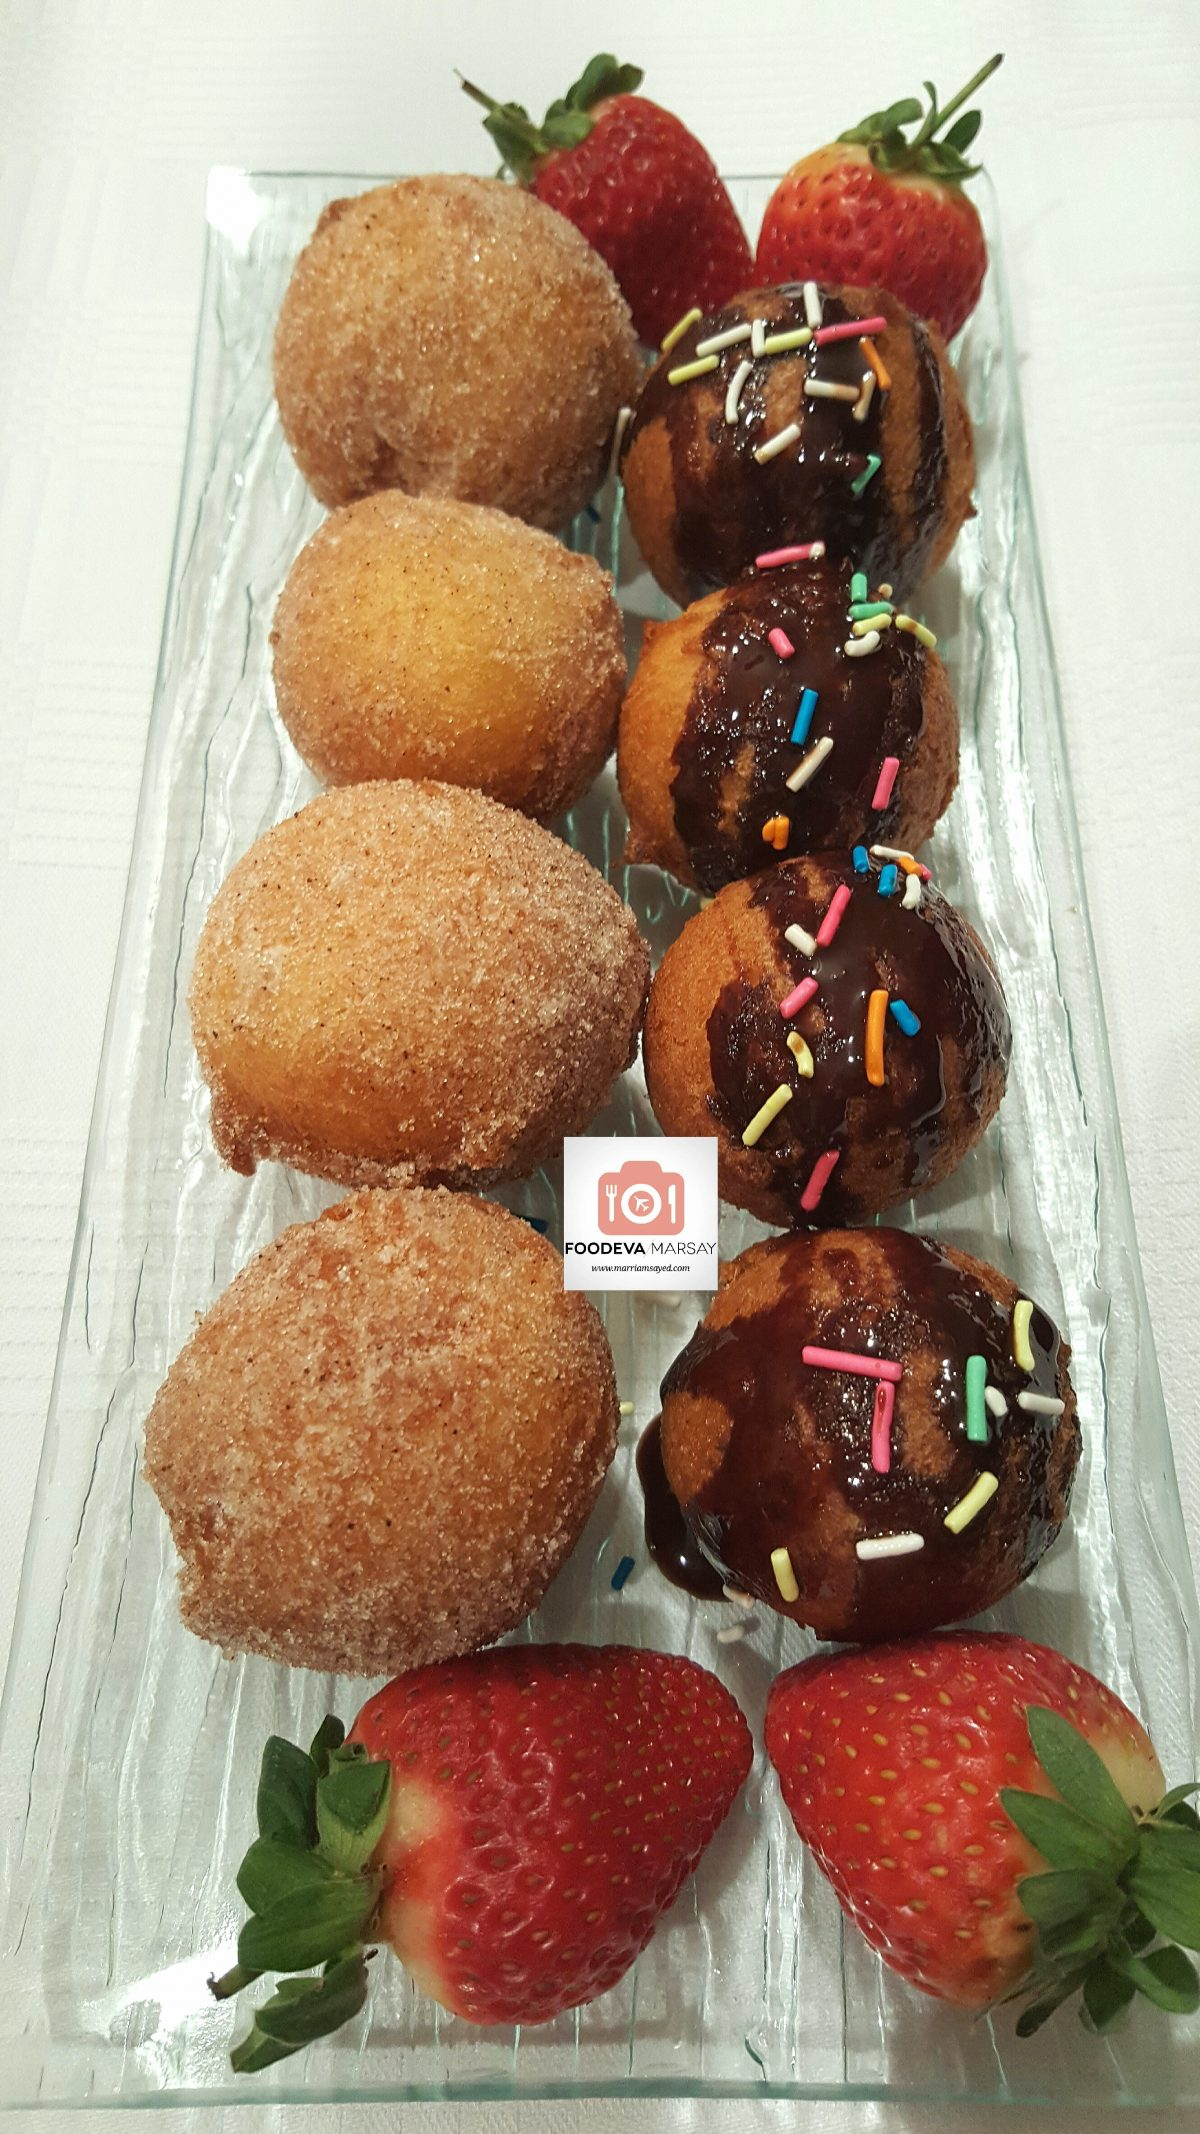 Easy 'Funfair Style' Donuts - Serving Suggestions